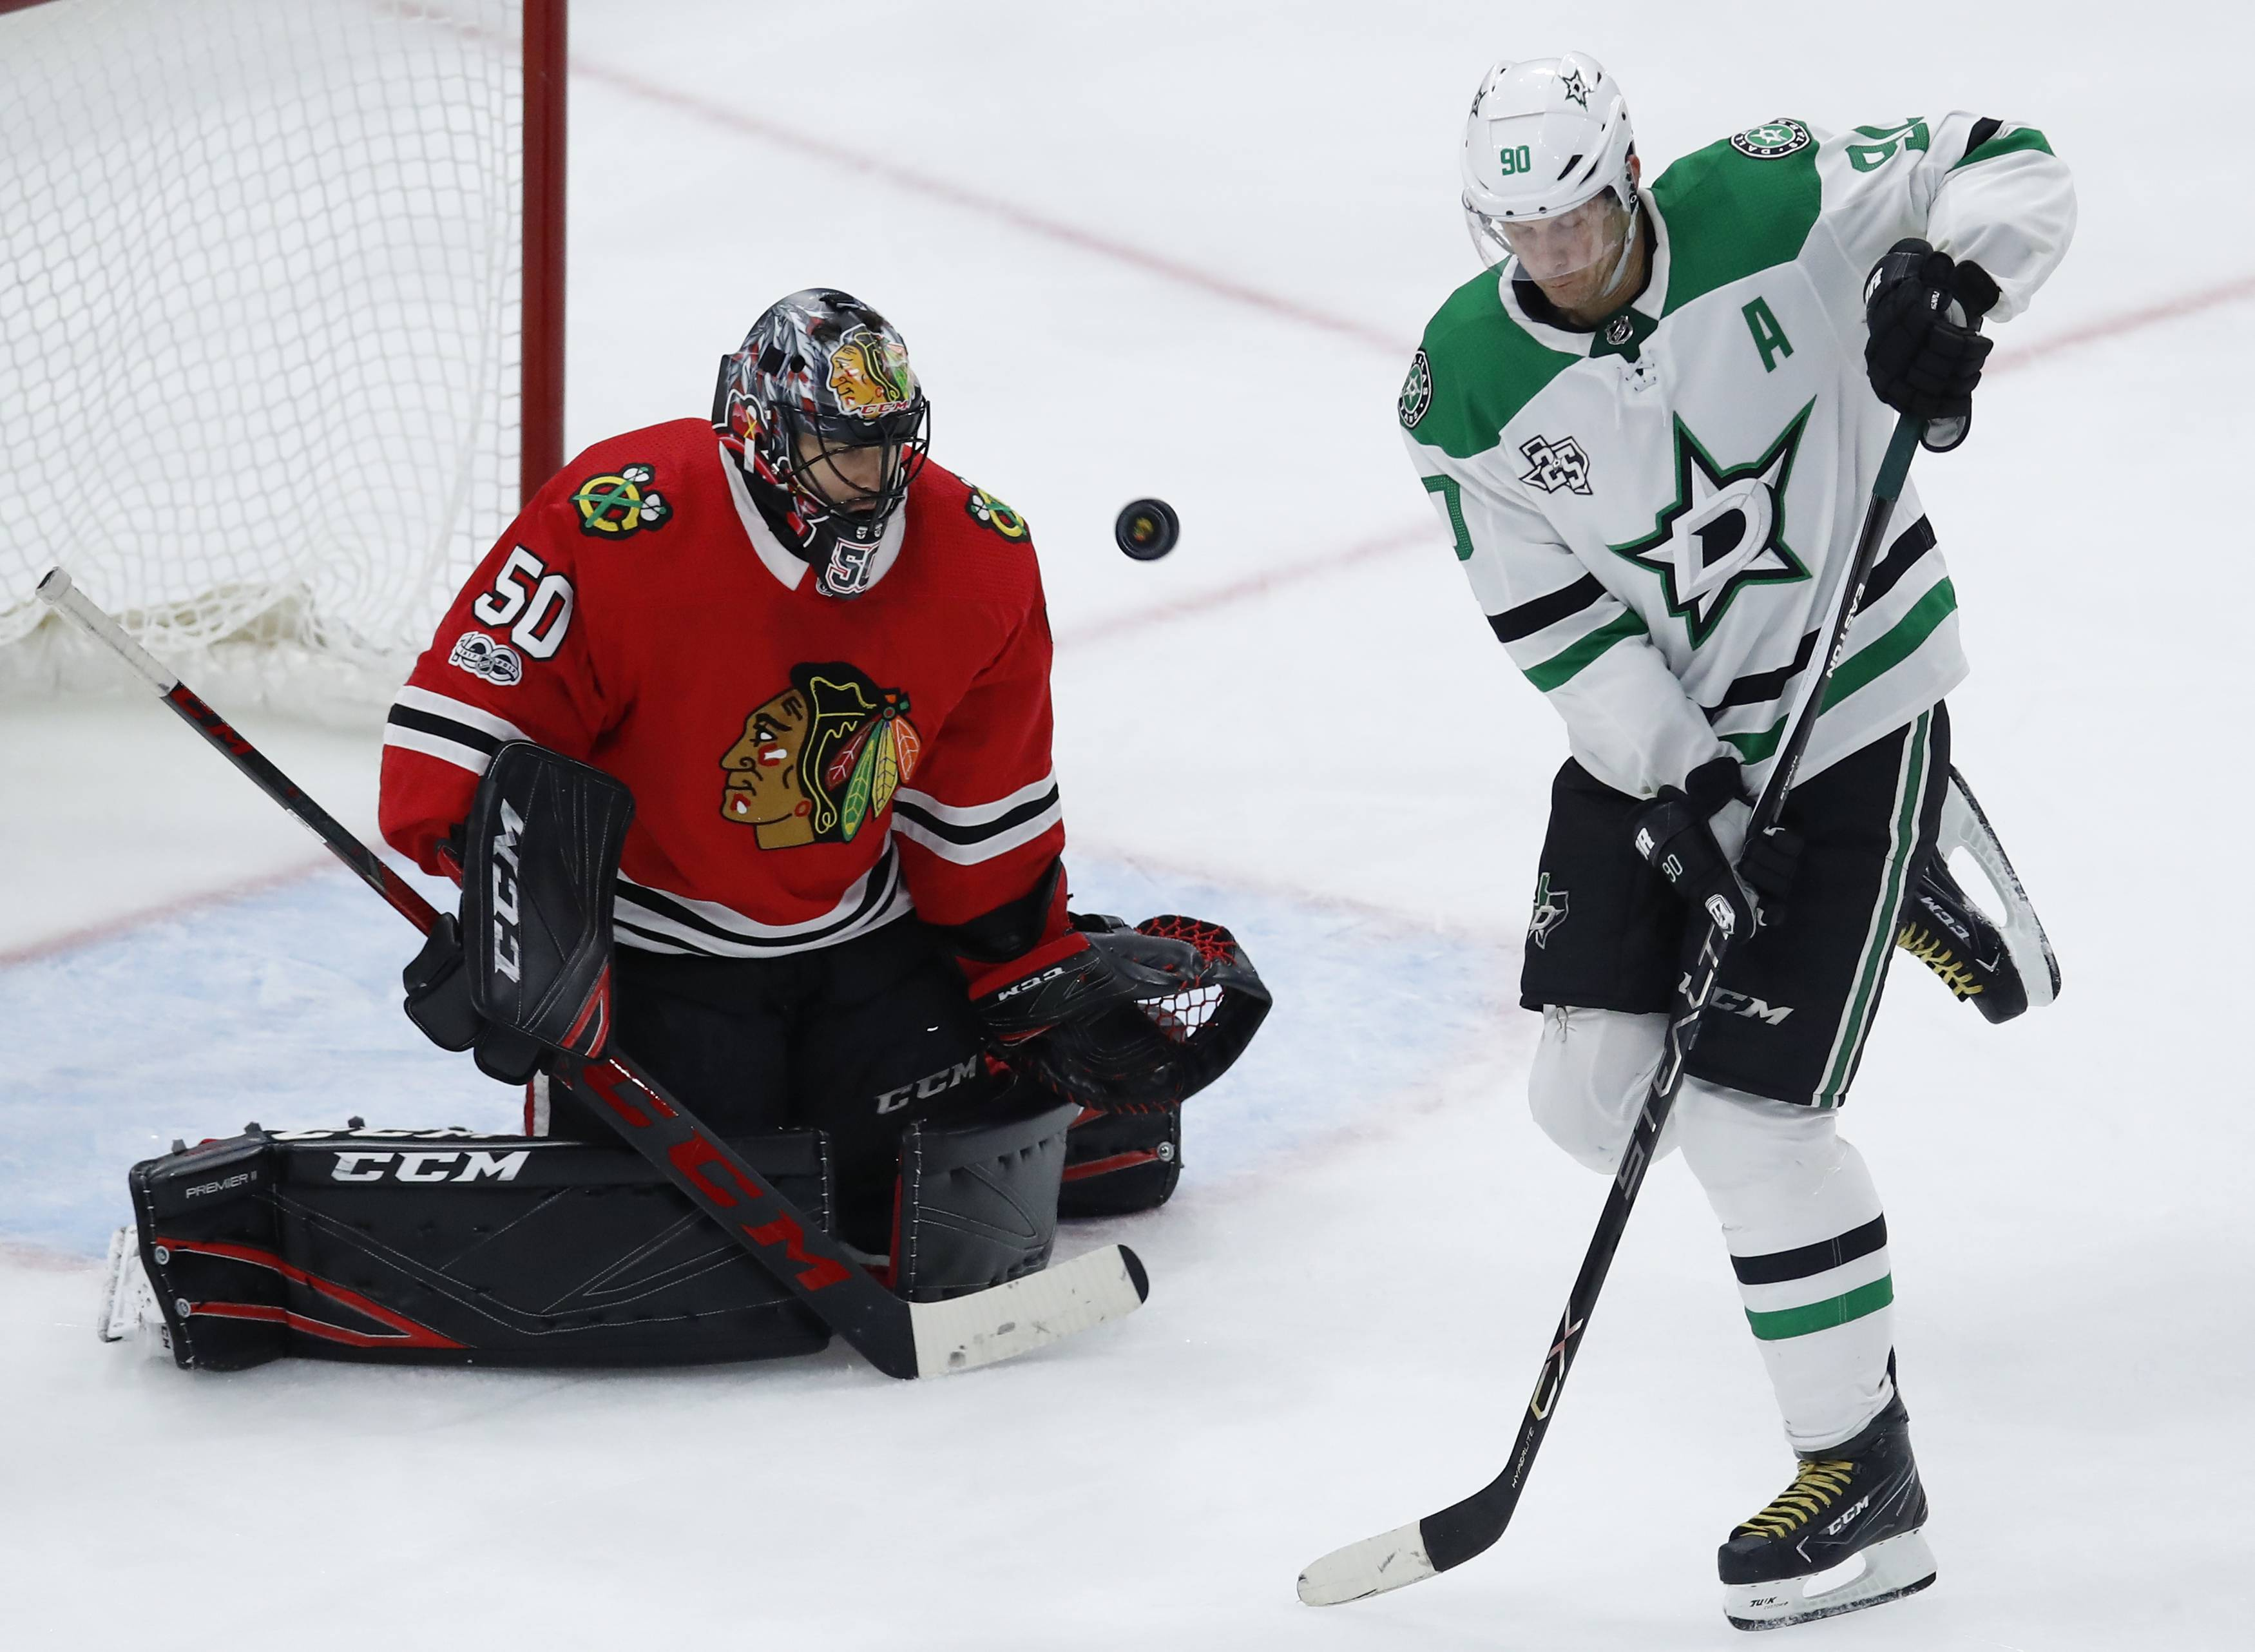 Chicago Blackhawks' Corey Crawford, left, was able to get on the ice Saturday morning after being on injured reserve since Dec. 27. The team was hopeful he would be able to do the same on Sunday, but his overall status is still unknown.